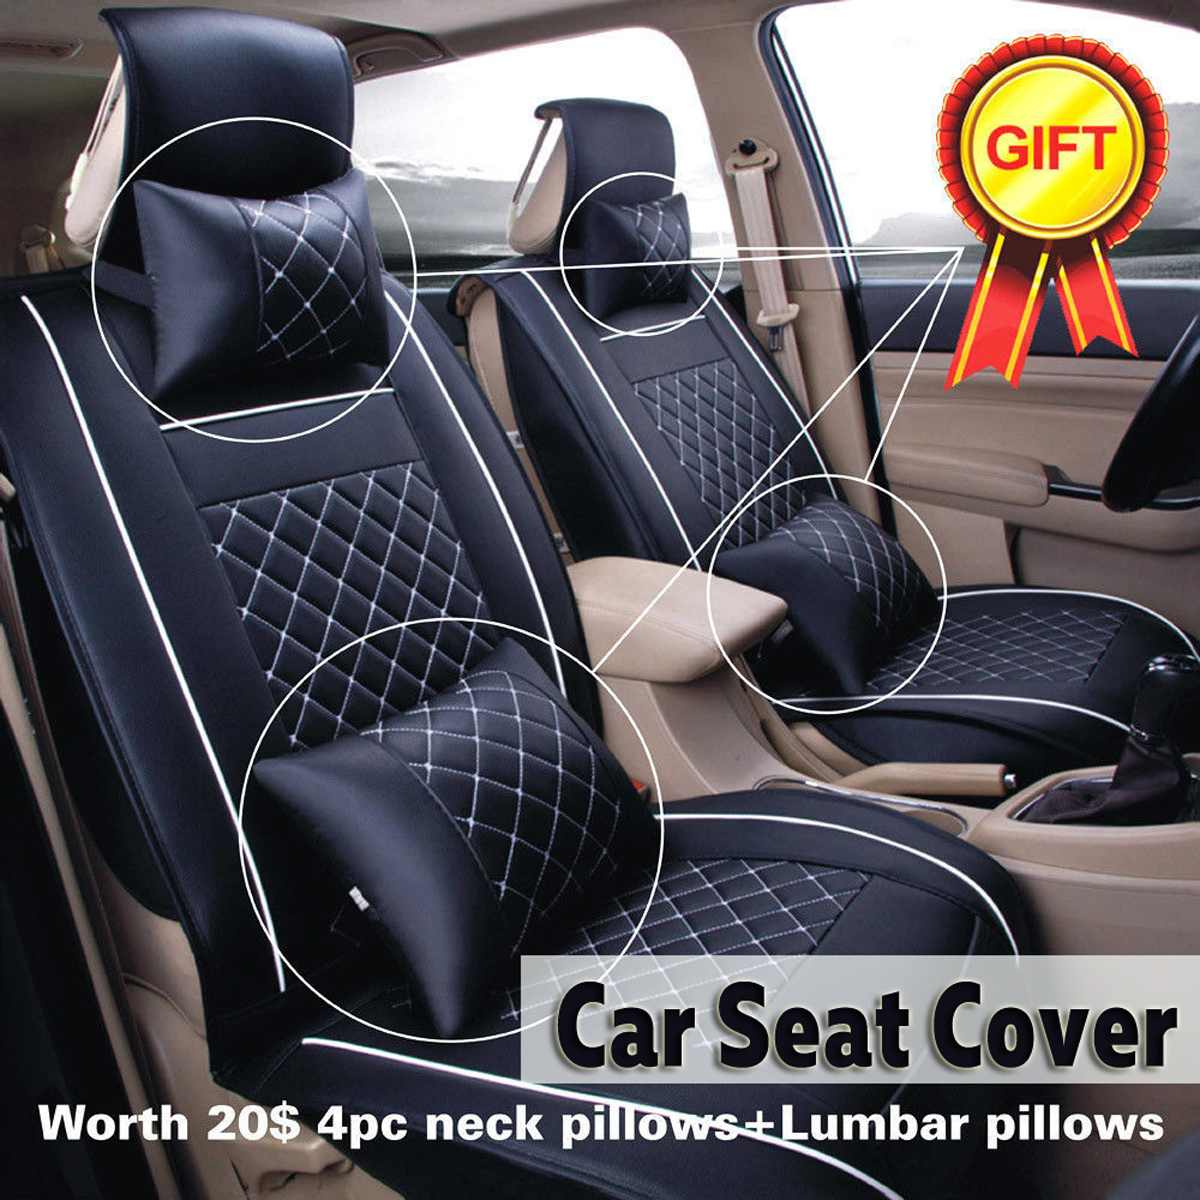 11Pcs/Set Universal Car Seat Cover For Toyota Corolla Accessories Covers For Vehicle Seat Automobiles PU Leather Black White11Pcs/Set Universal Car Seat Cover For Toyota Corolla Accessories Covers For Vehicle Seat Automobiles PU Leather Black White